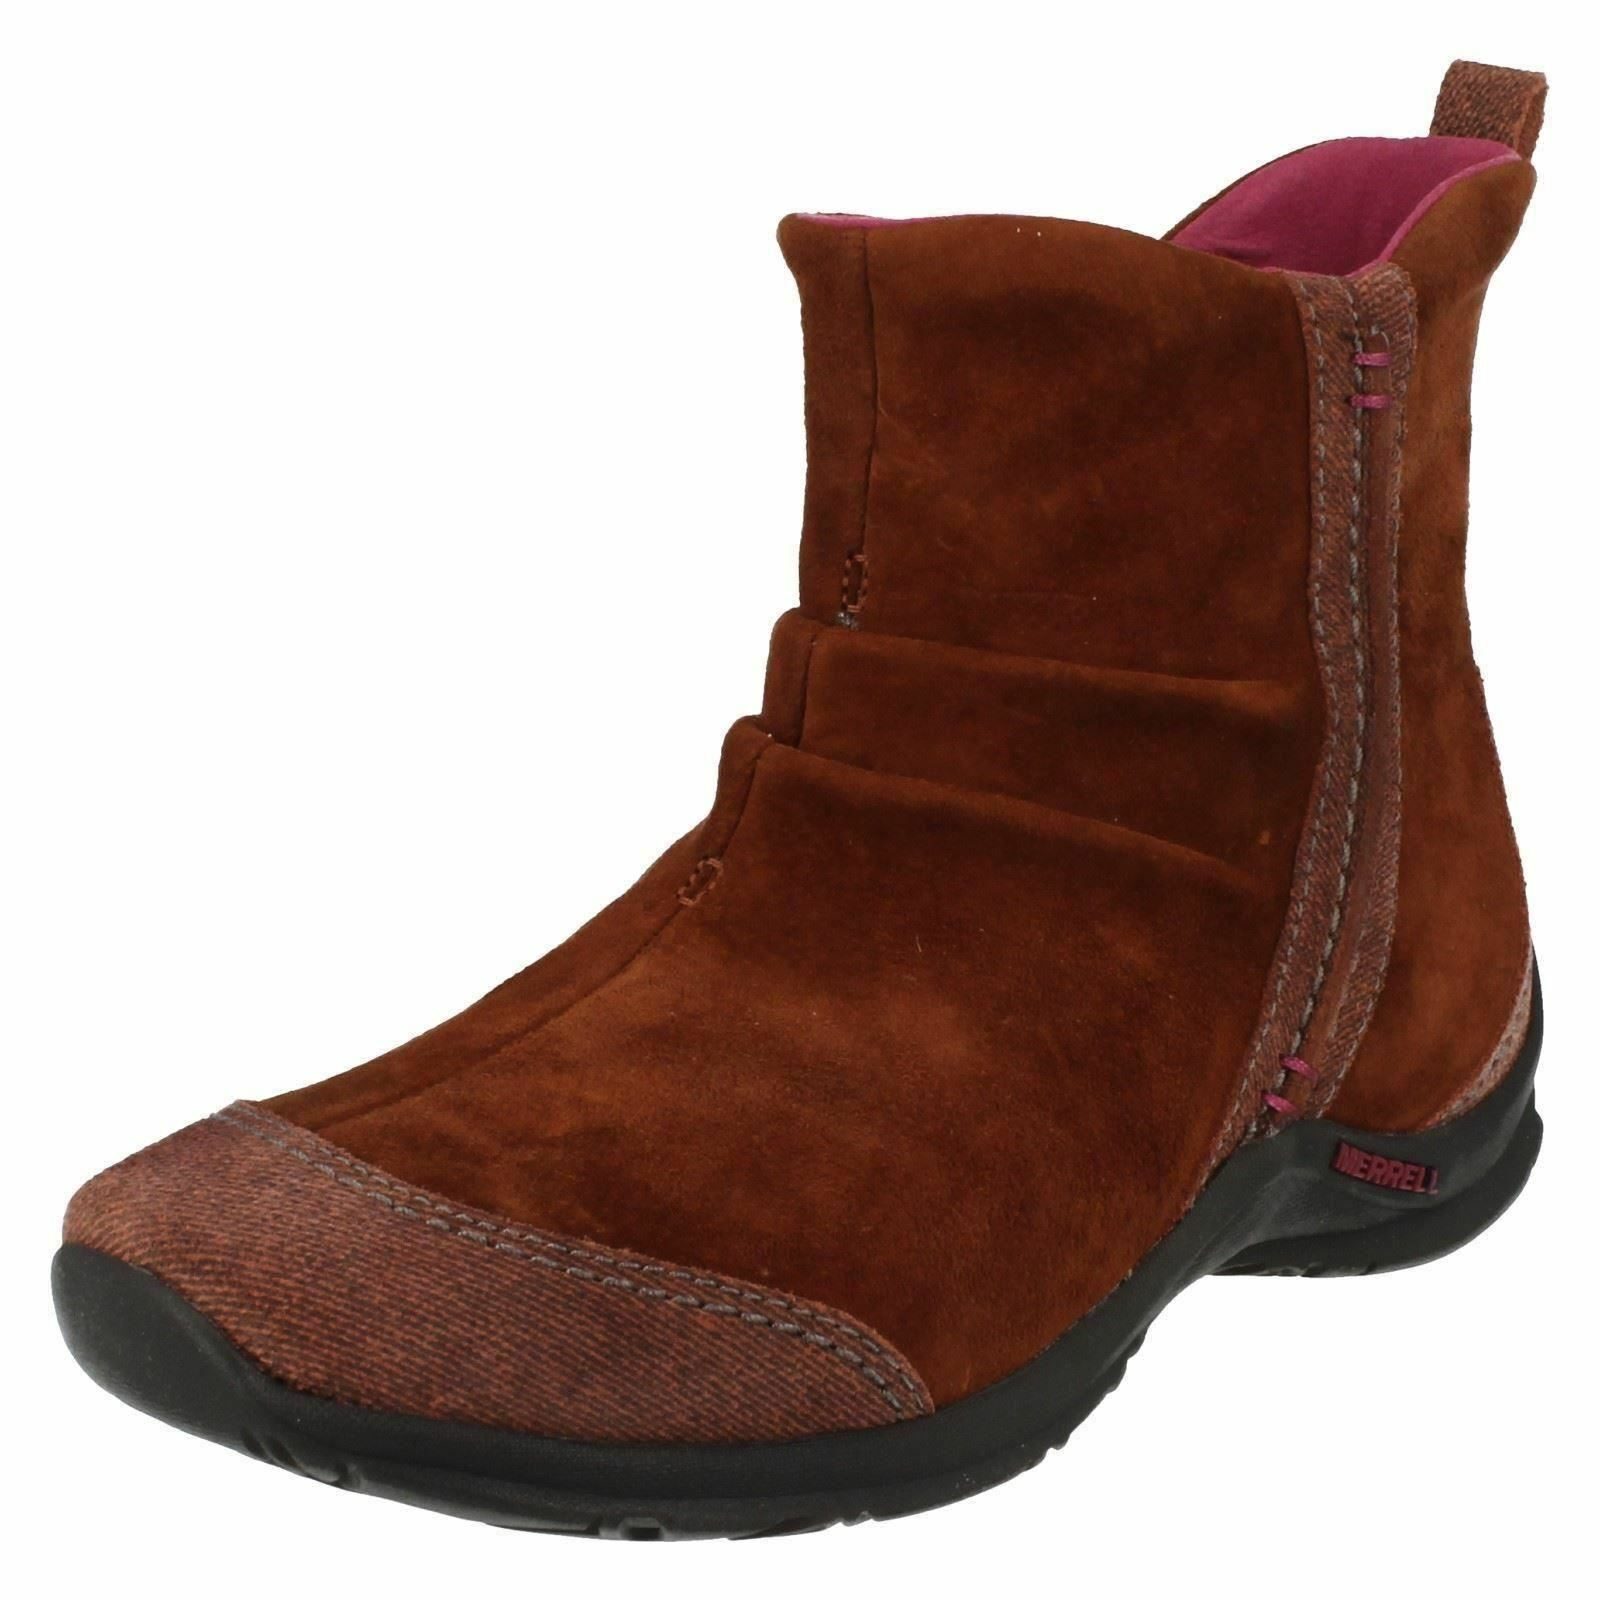 Ladies Merrell Madrasa Cinnamon Suede Leather Causal Ankle Boots